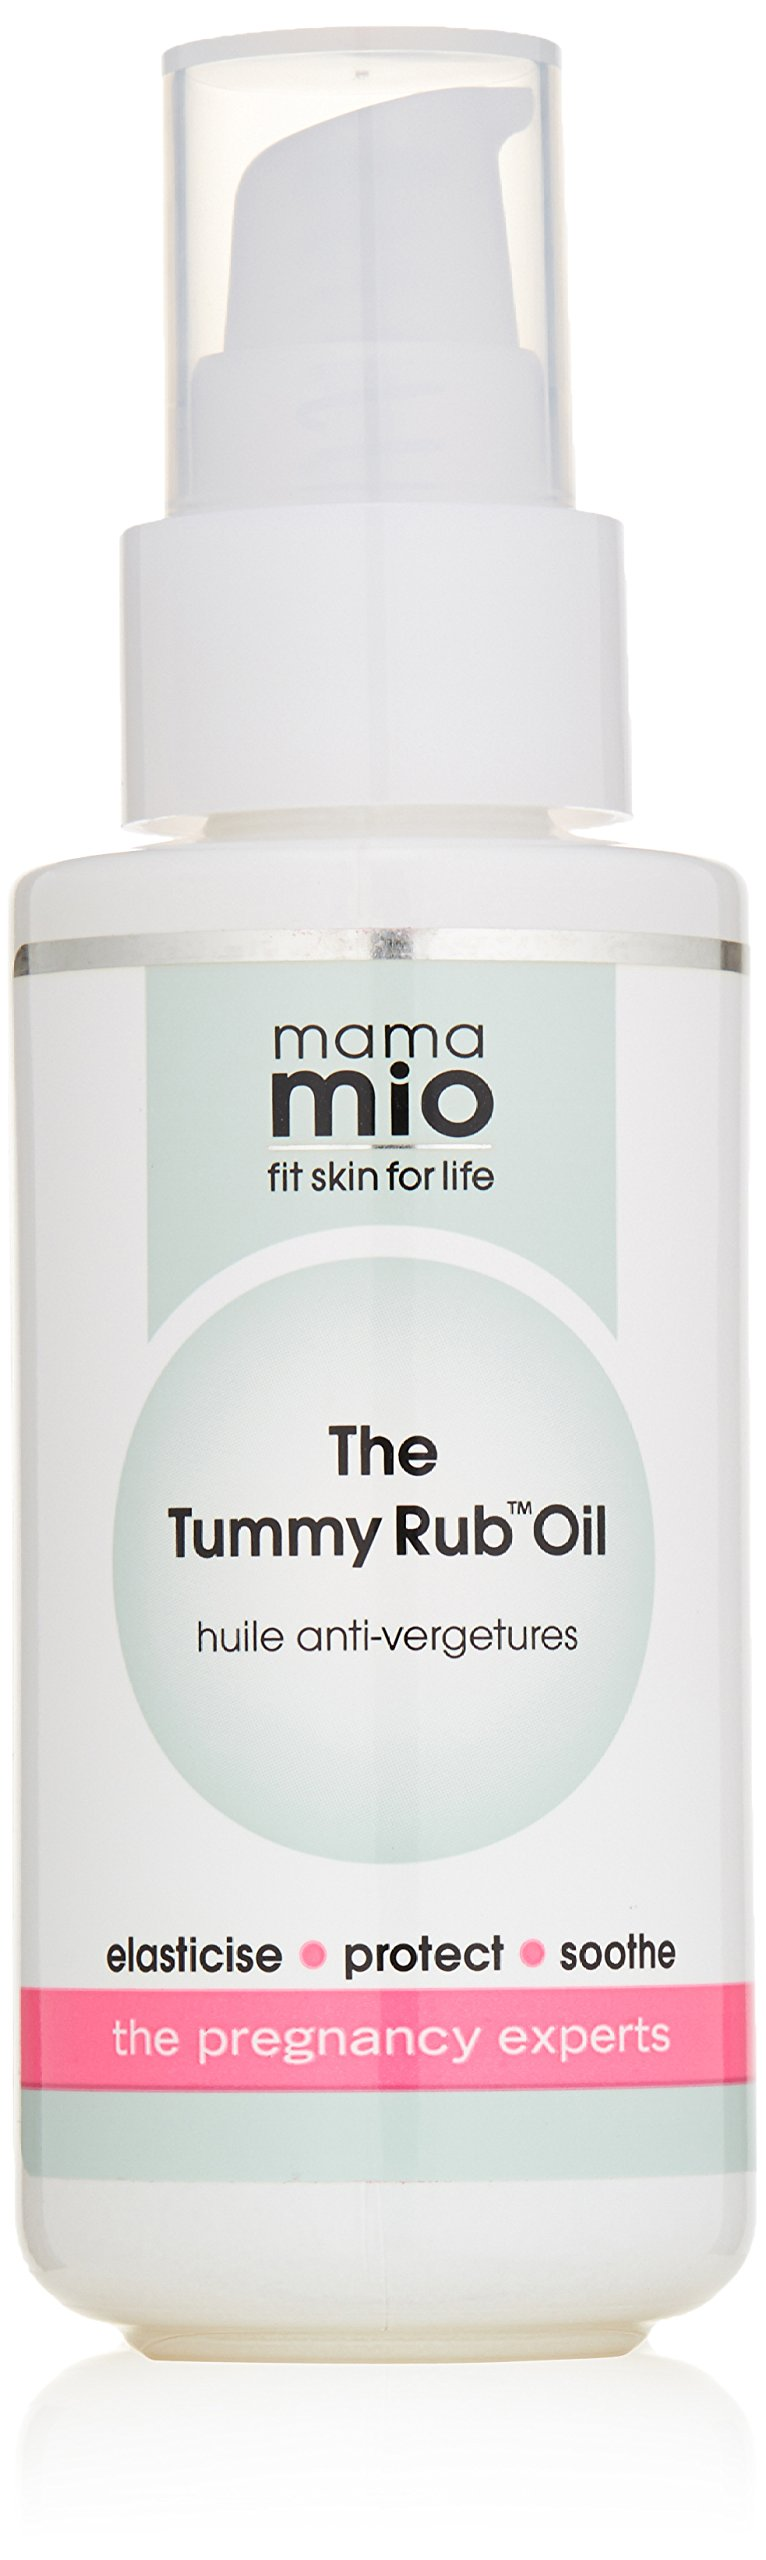 Mama Mio The Tummy Rub Oil, 4.1 fl. oz. by Mama Mio